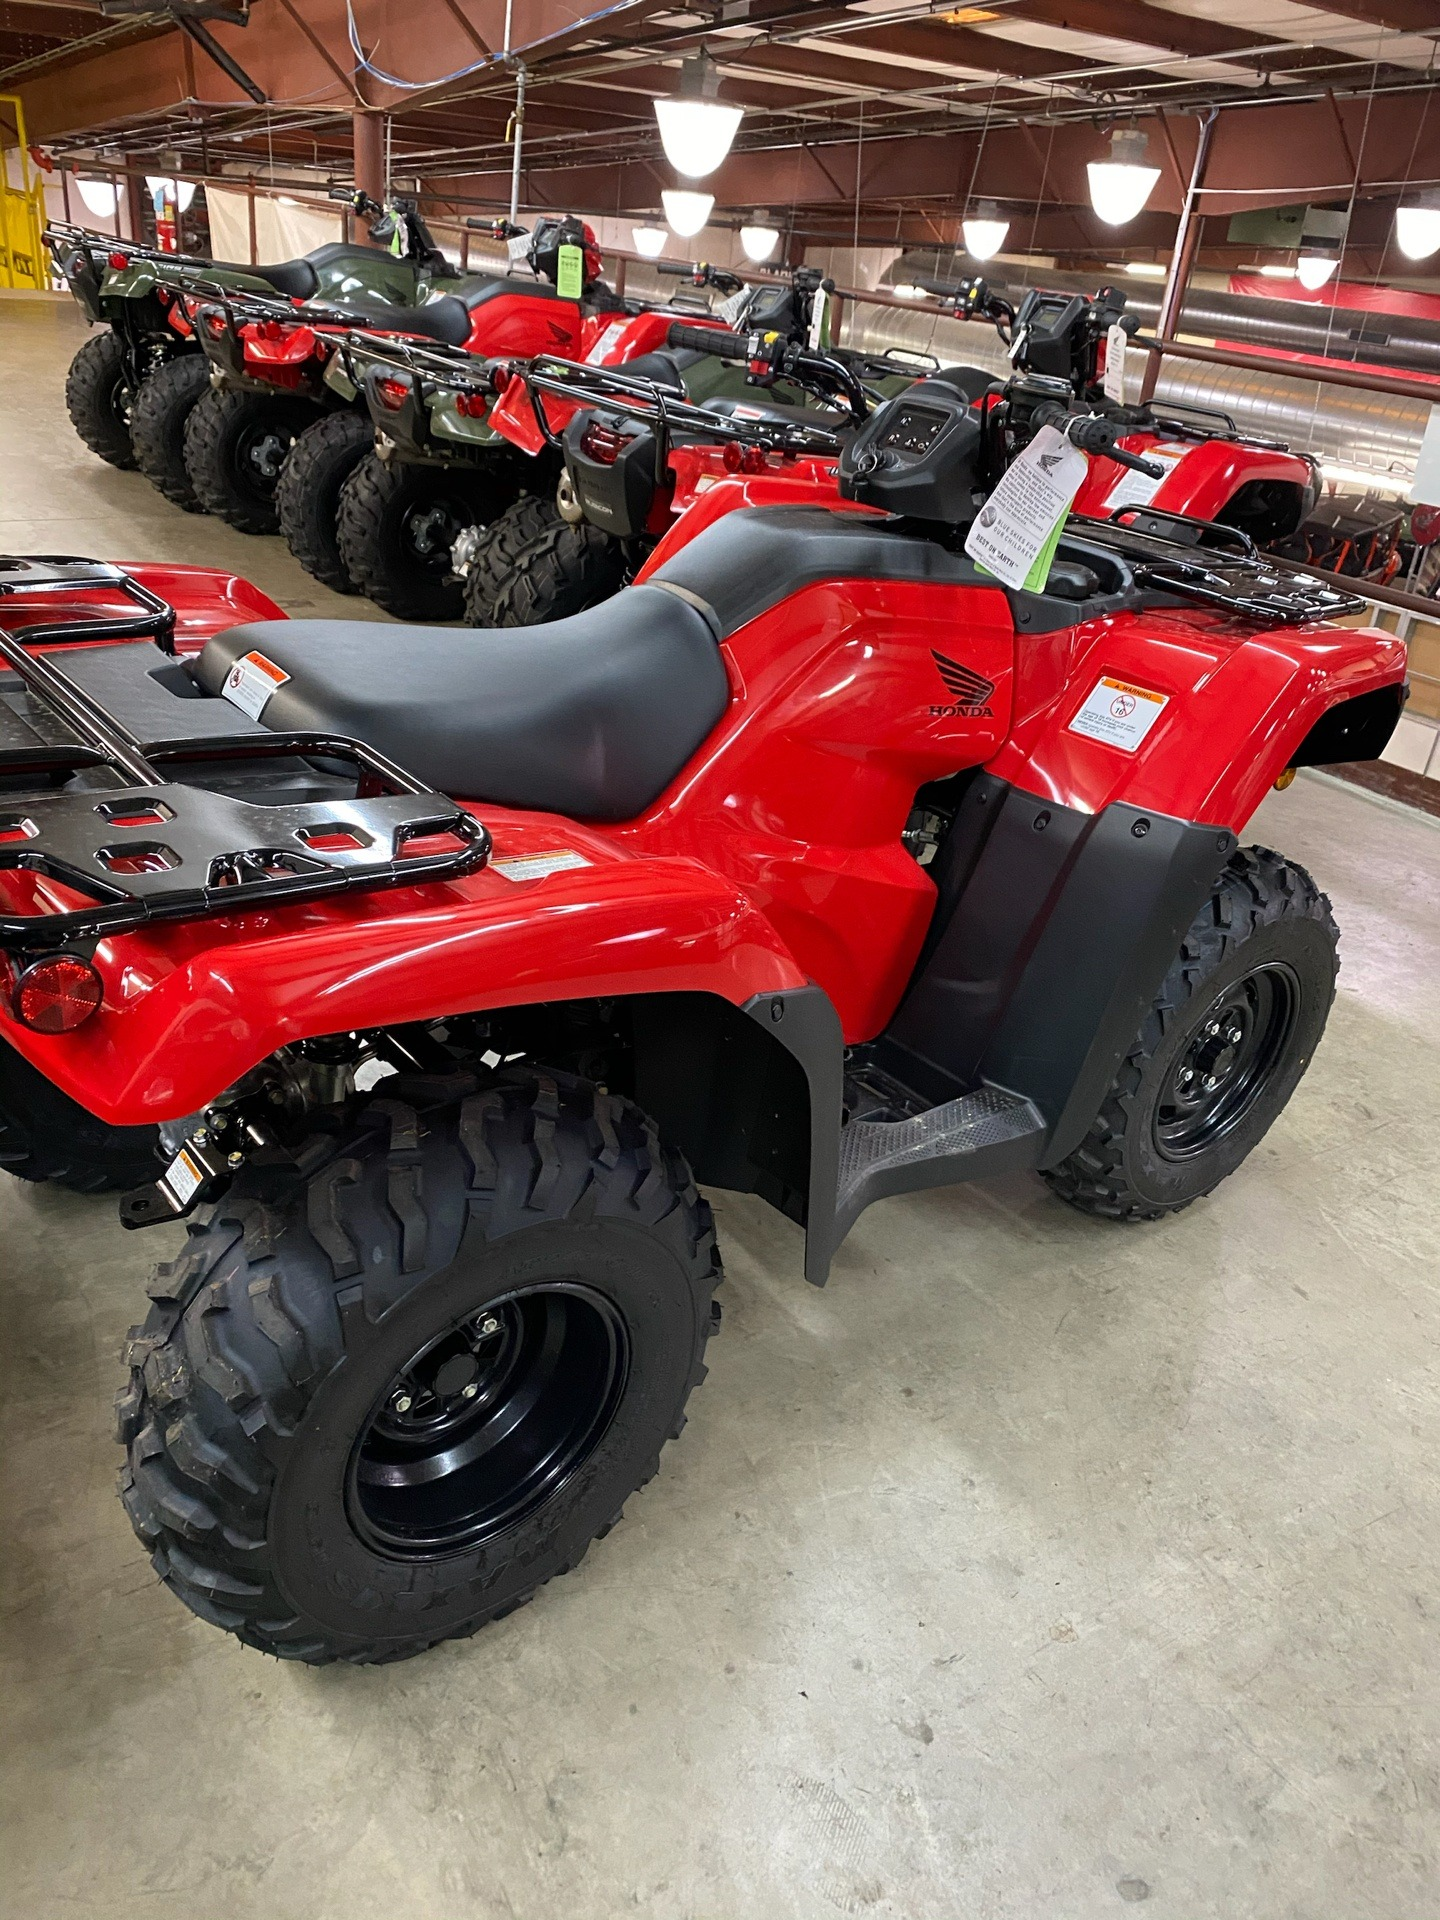 2020 Honda FourTrax Rancher in Statesville, North Carolina - Photo 2